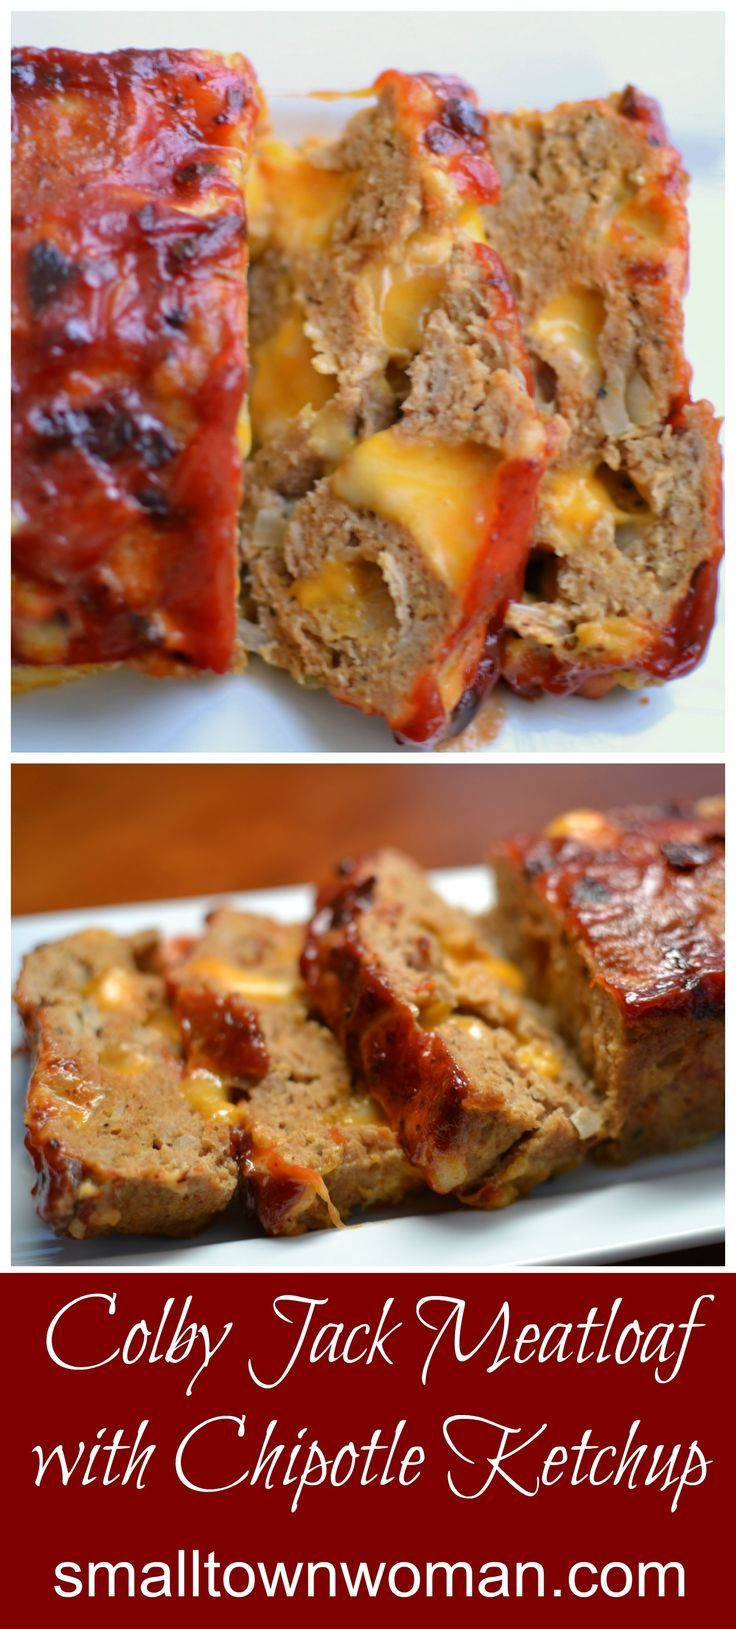 This meatloaf is easy peezy and of course cheesy! You are going to love all the taste bud tantalizing goodness in this great recipe!